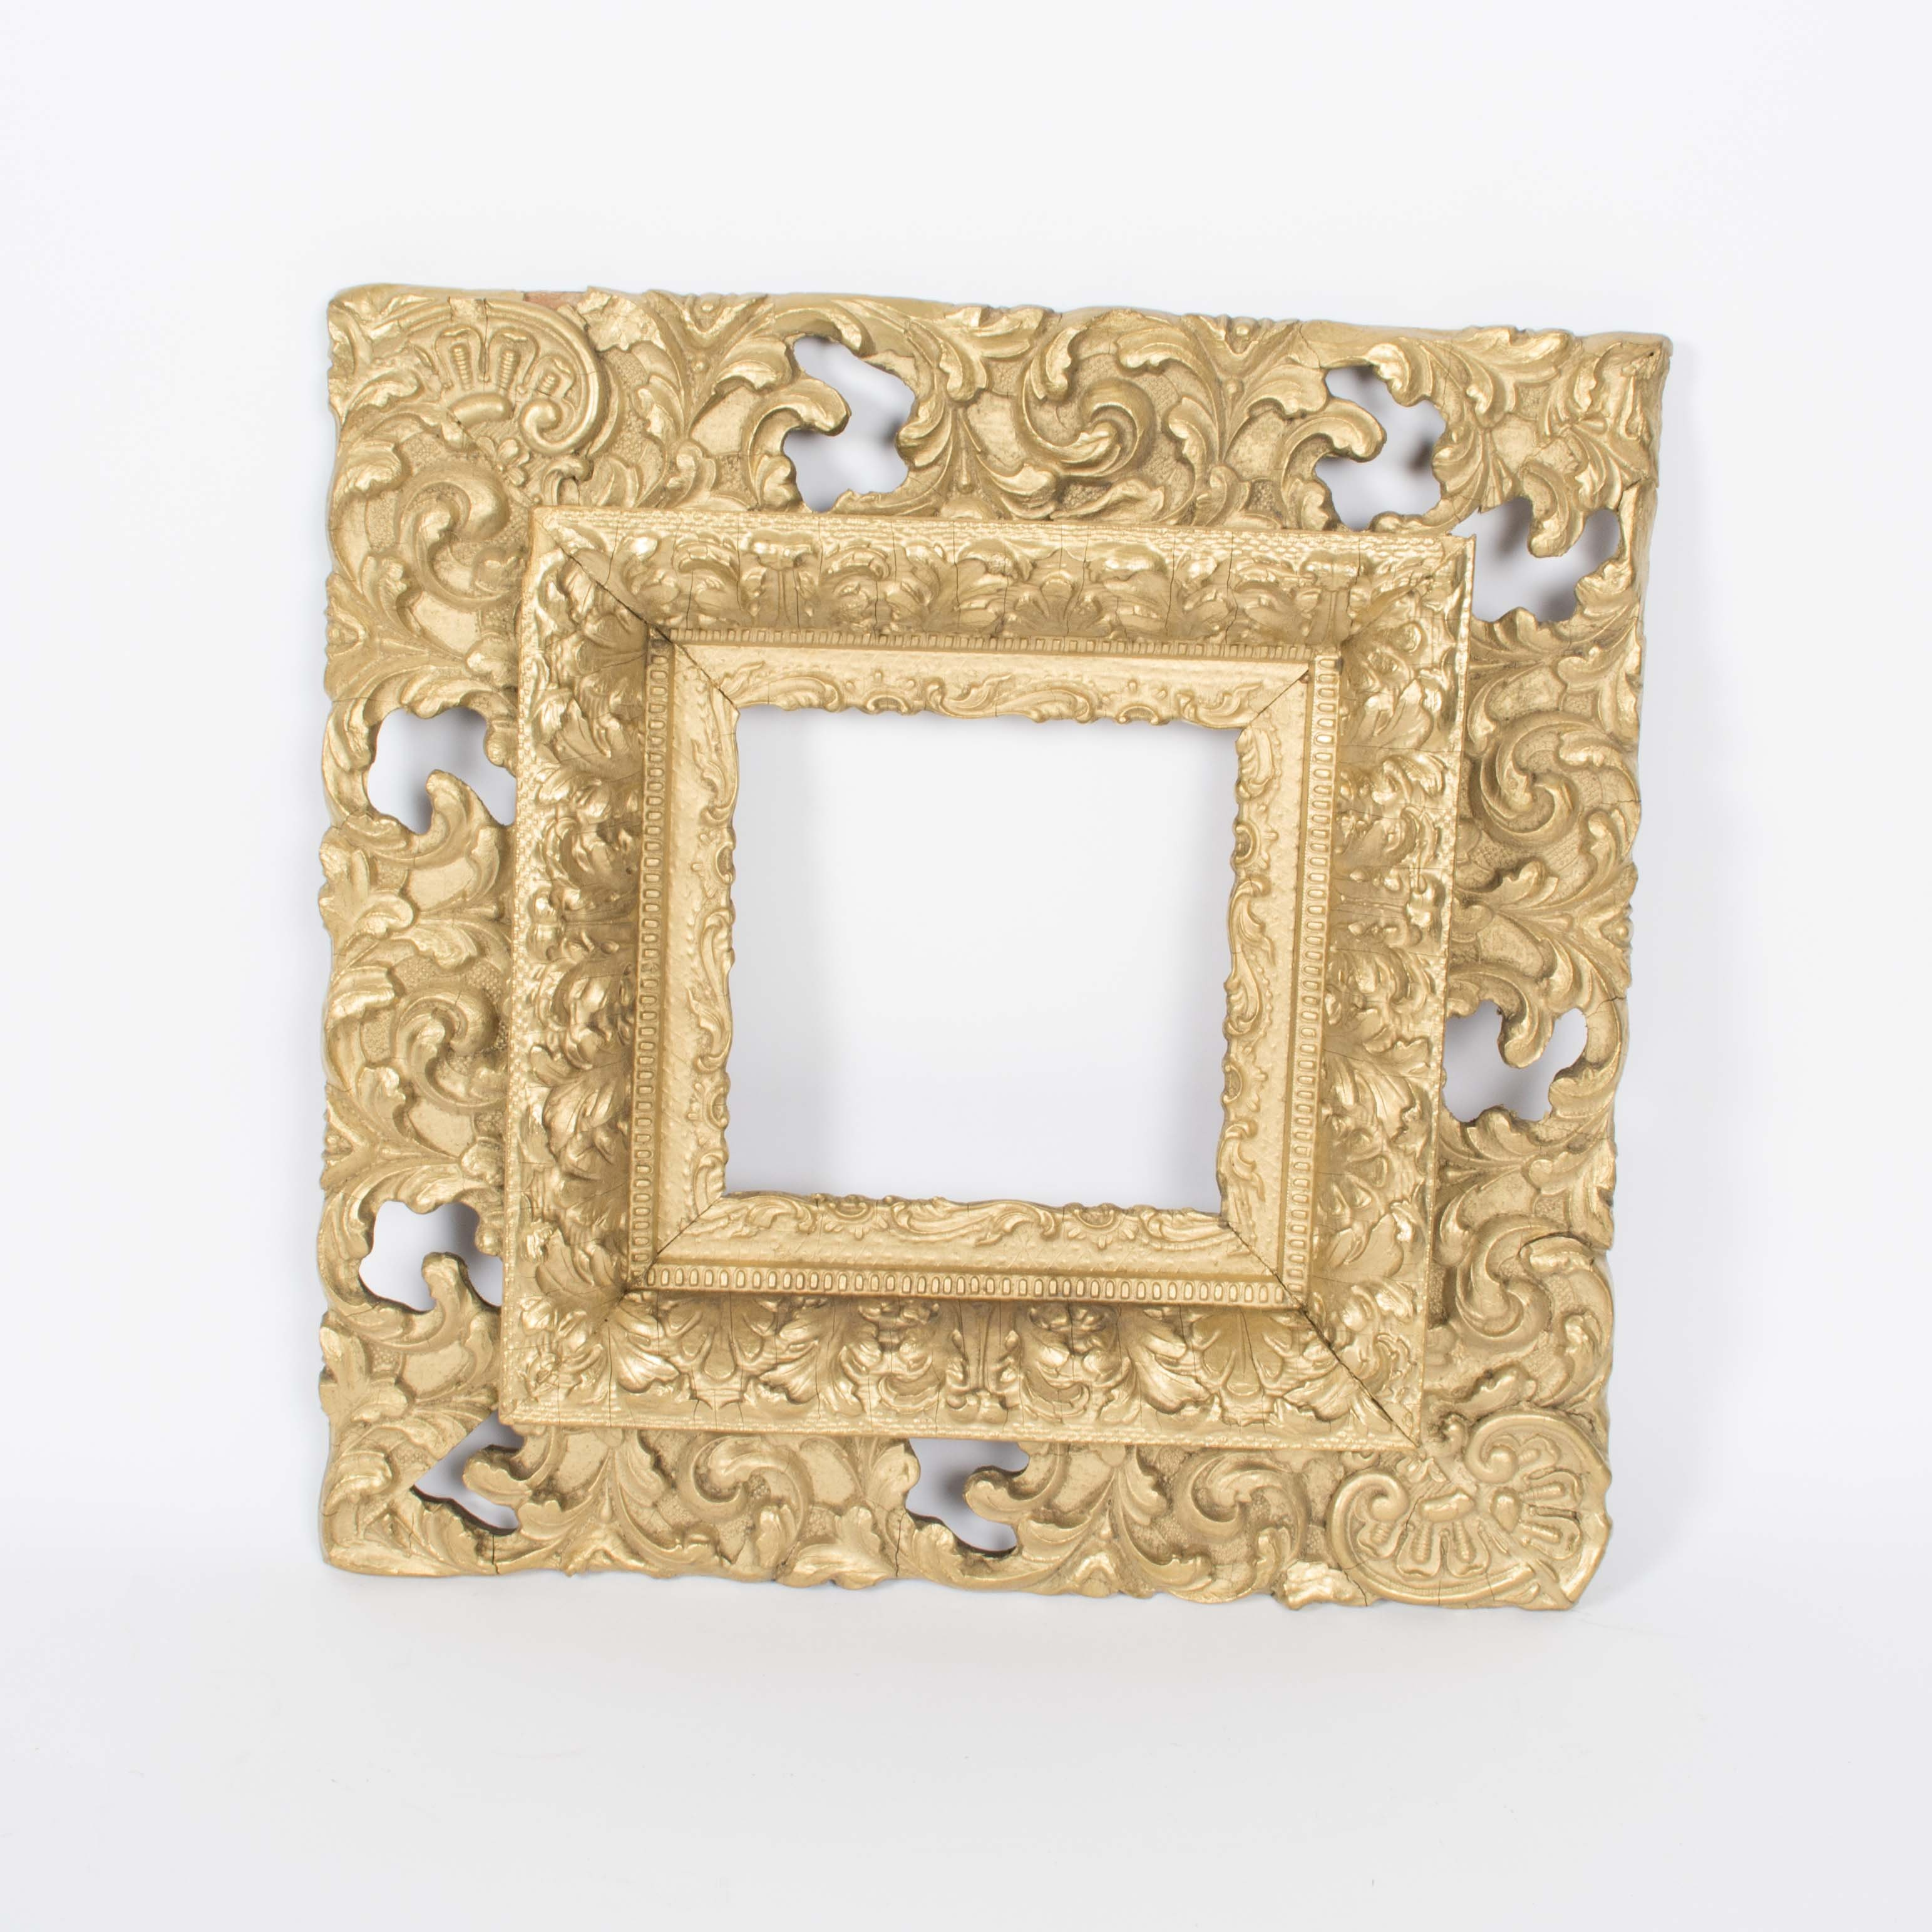 Antique Gold Tone Wood and Gesso Picture Frame